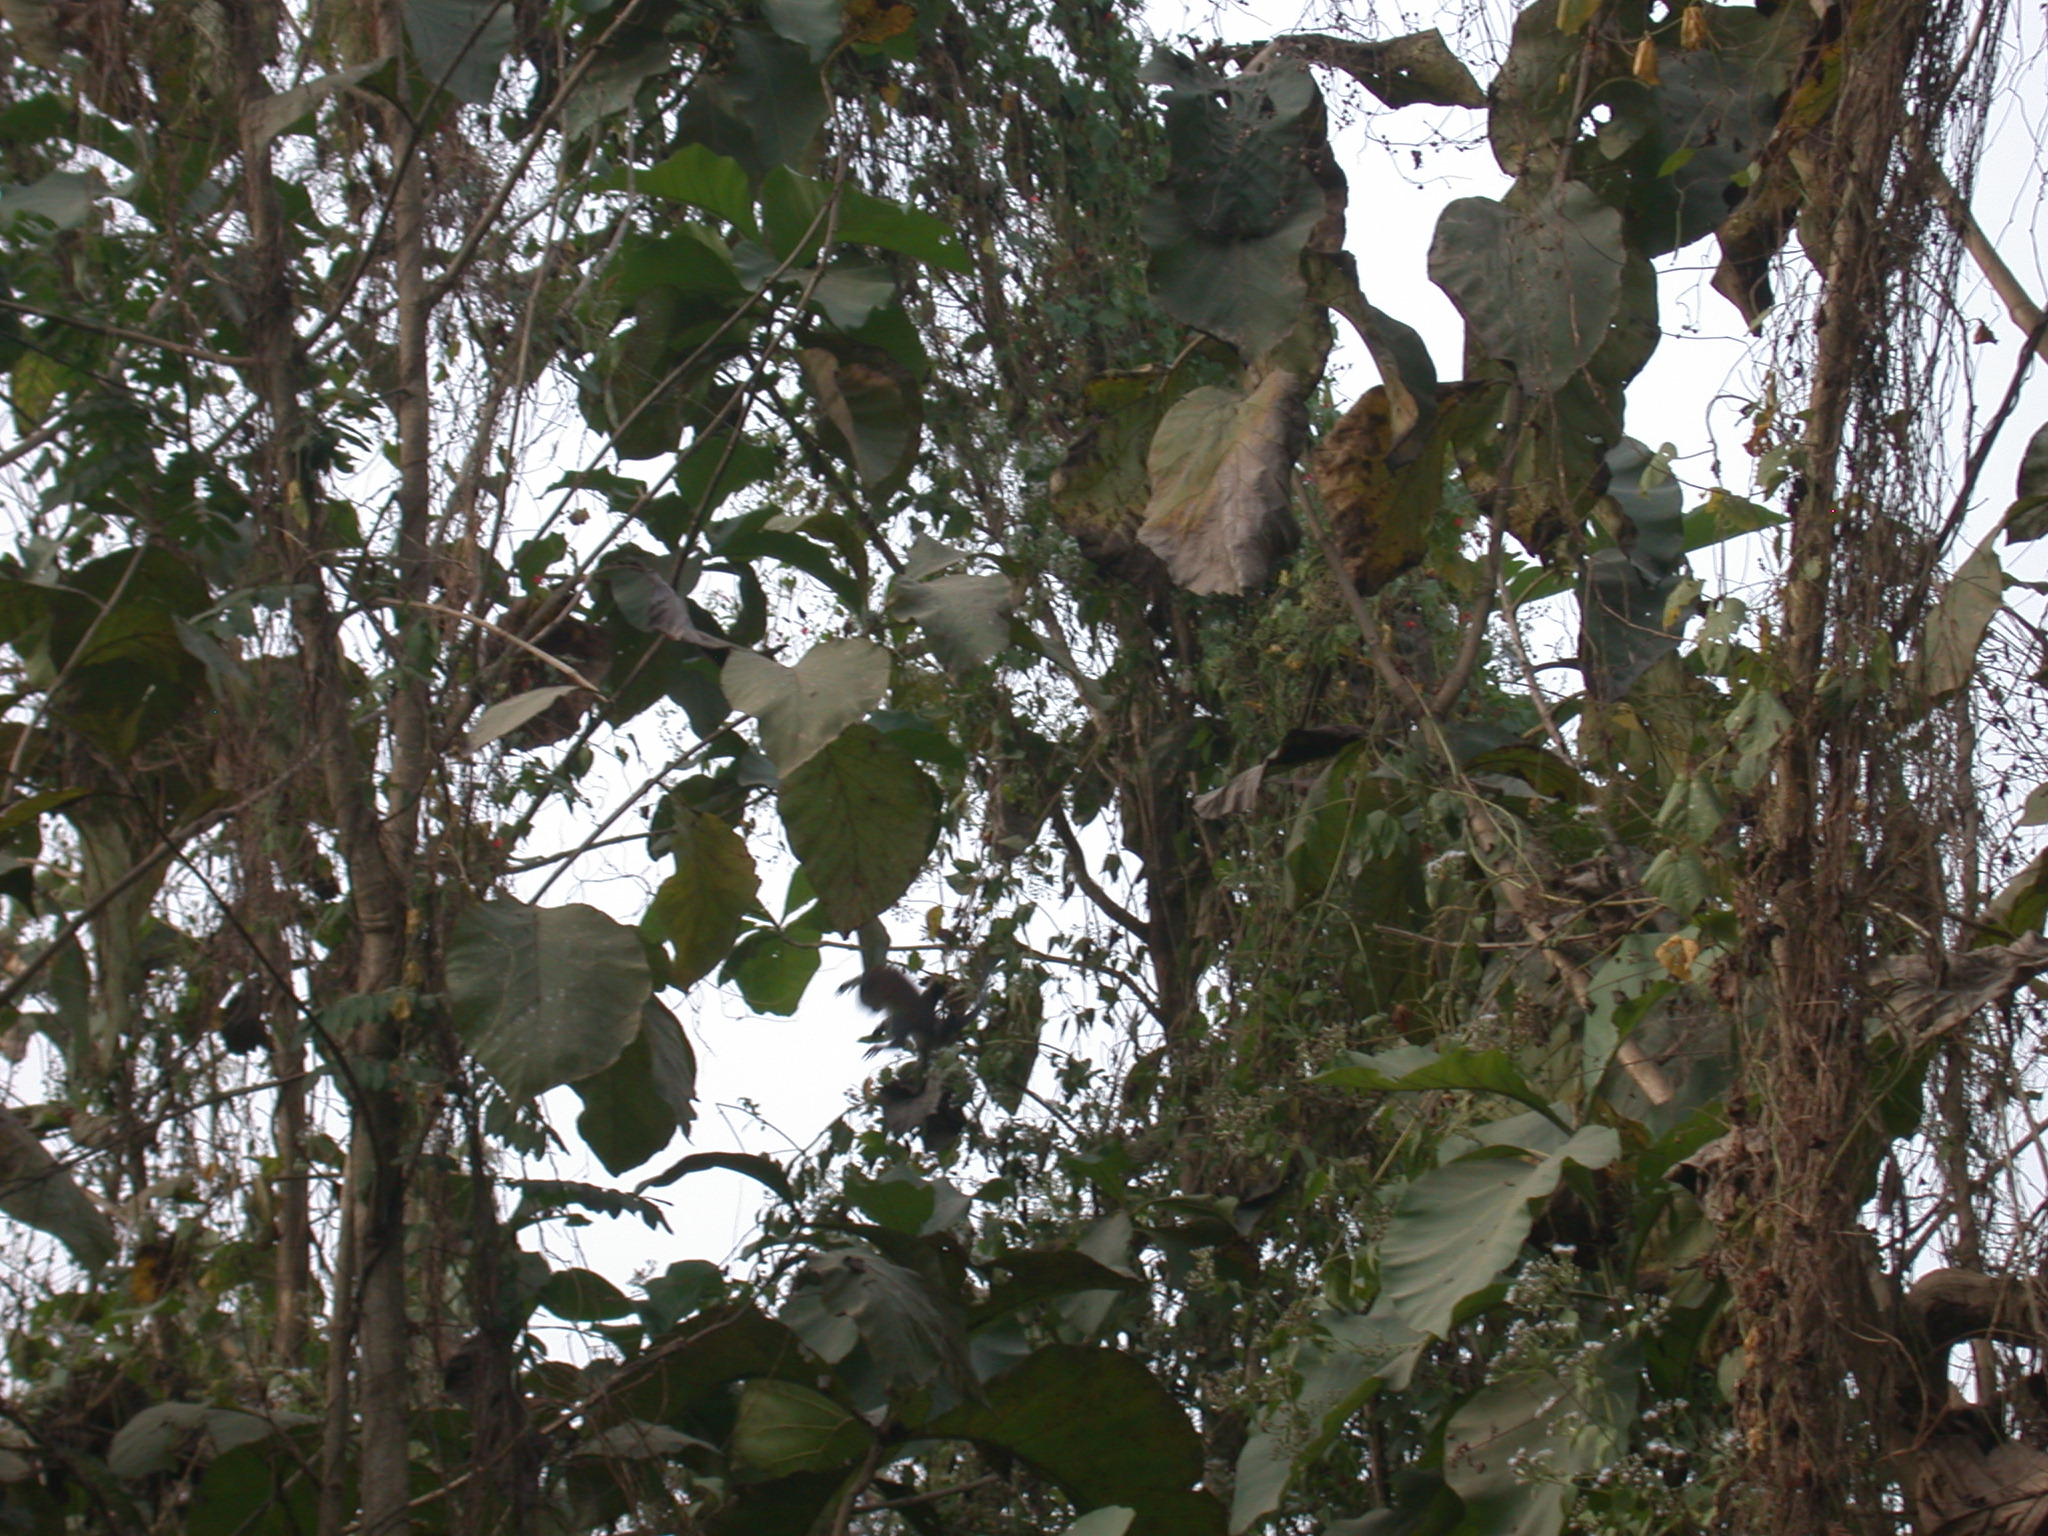 Monkeys Hiding in Vegetation by Access Road, Osun Sacred Grove, Oshogbo, Nigeria